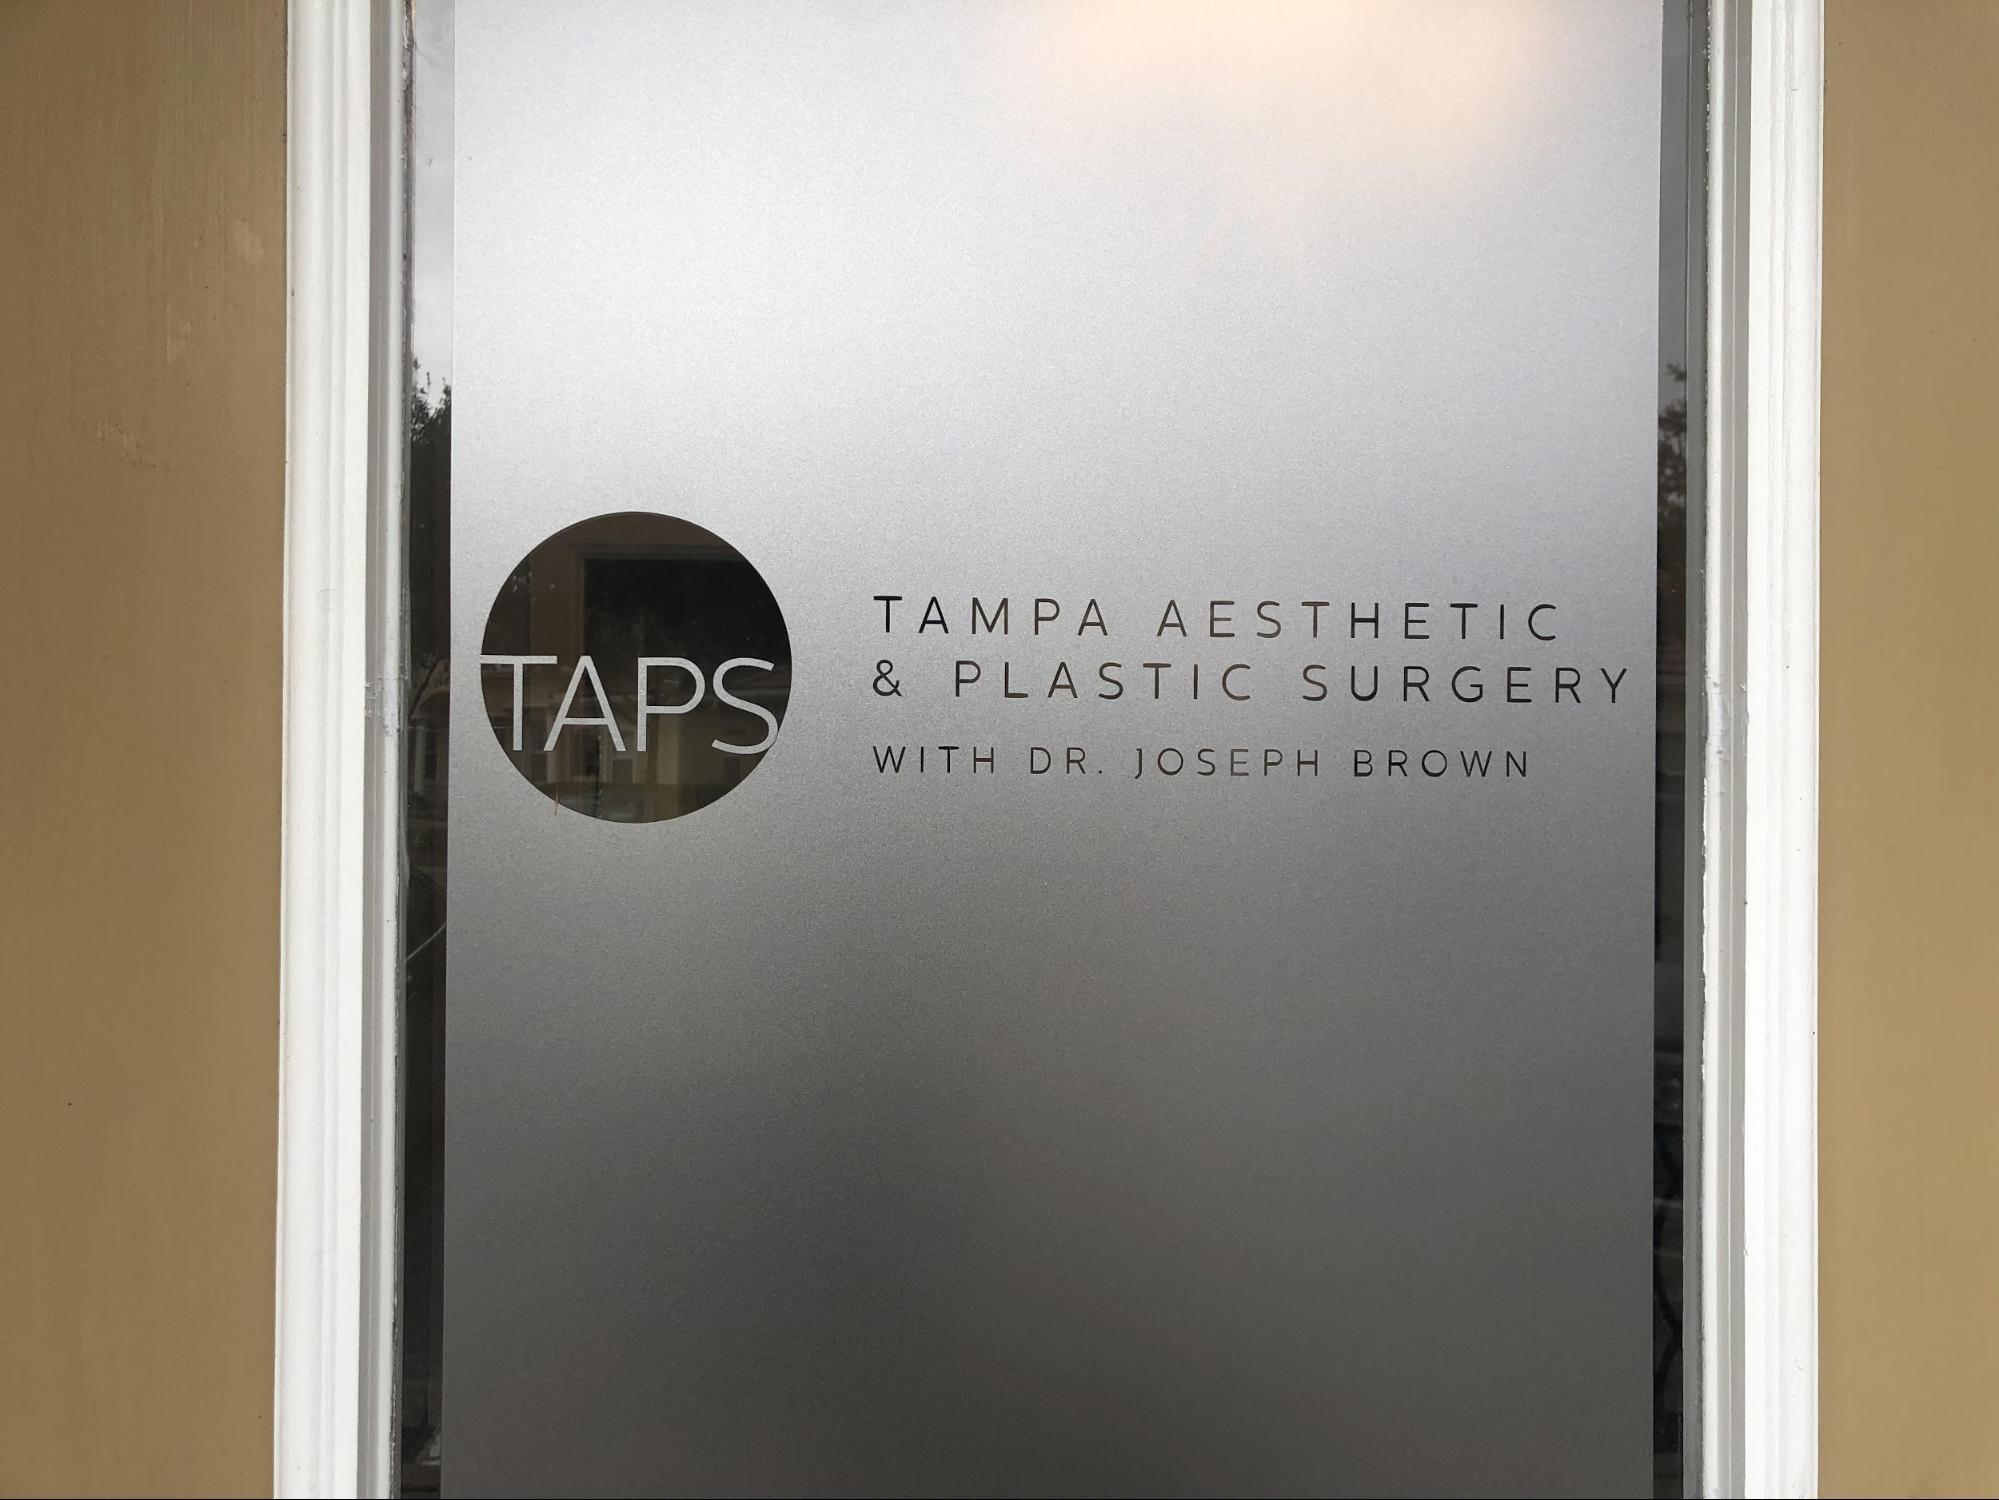 Photo of TAPS office's doors.